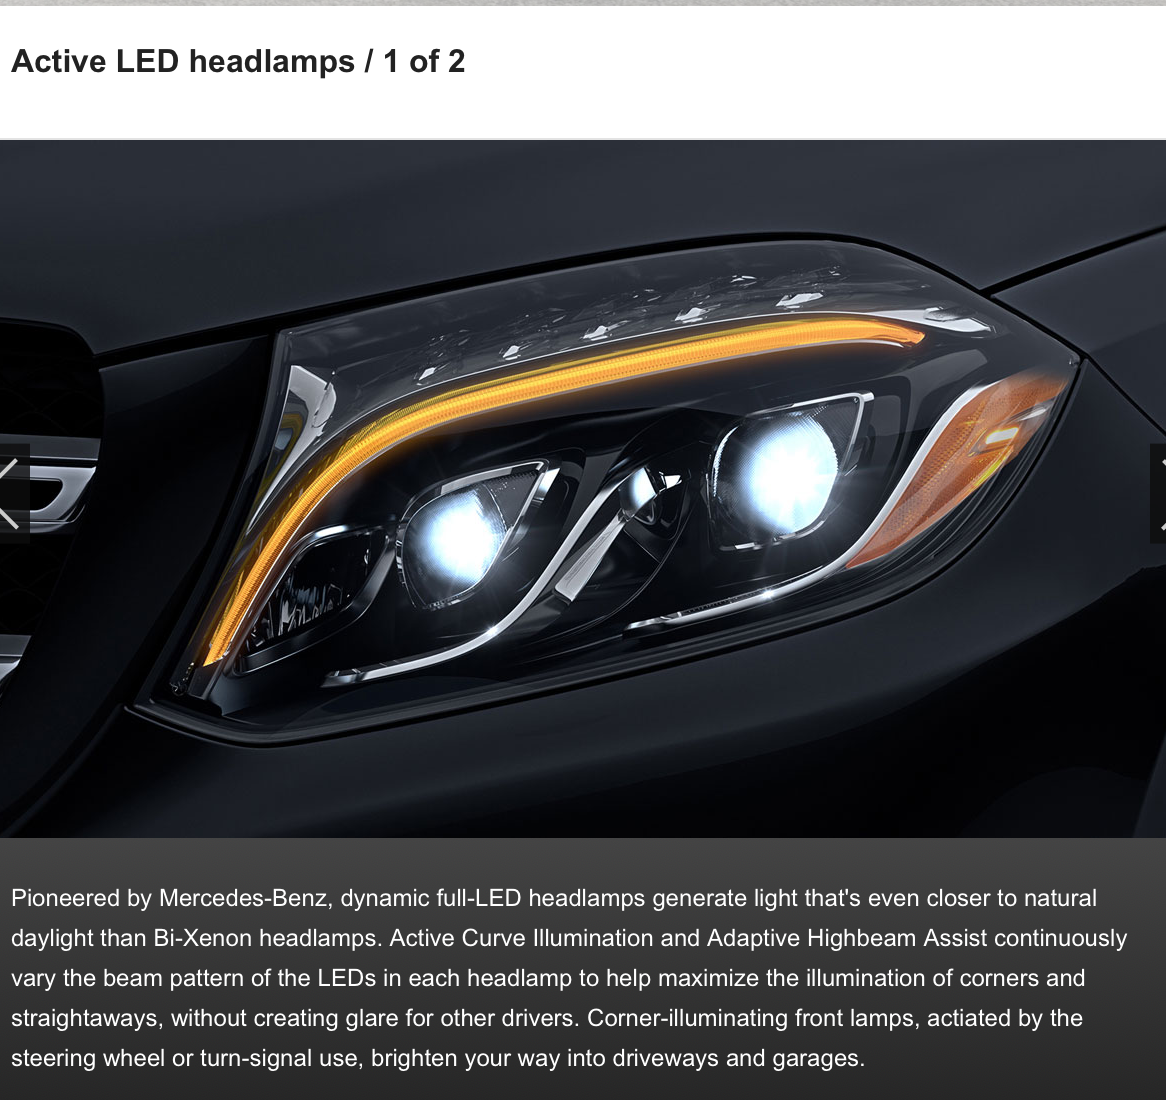 Active LED headlamps / Cornering Lights Missing - MBWorld